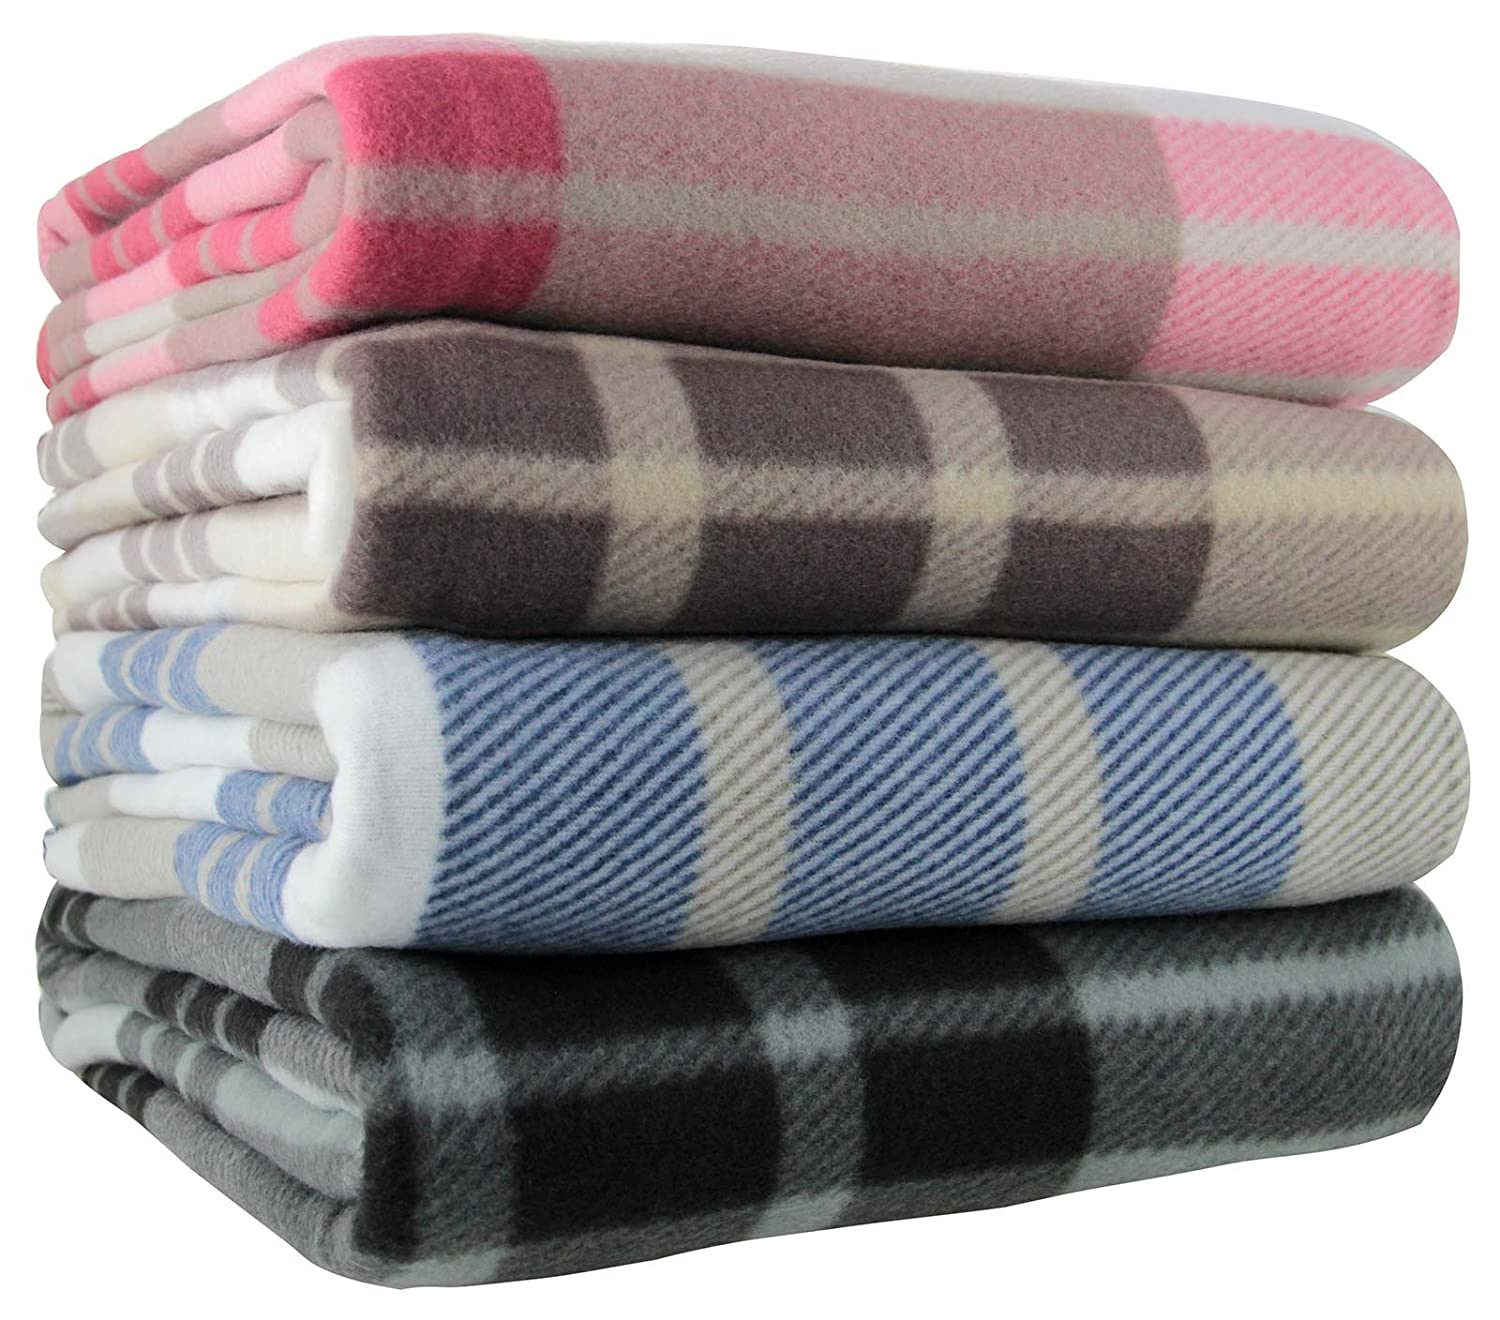 ideal textiles tartan check polar fleece throw blanket suitable for chair or bed machine washable 125cm x 150cm natural amazoncouk kitchen u0026 home